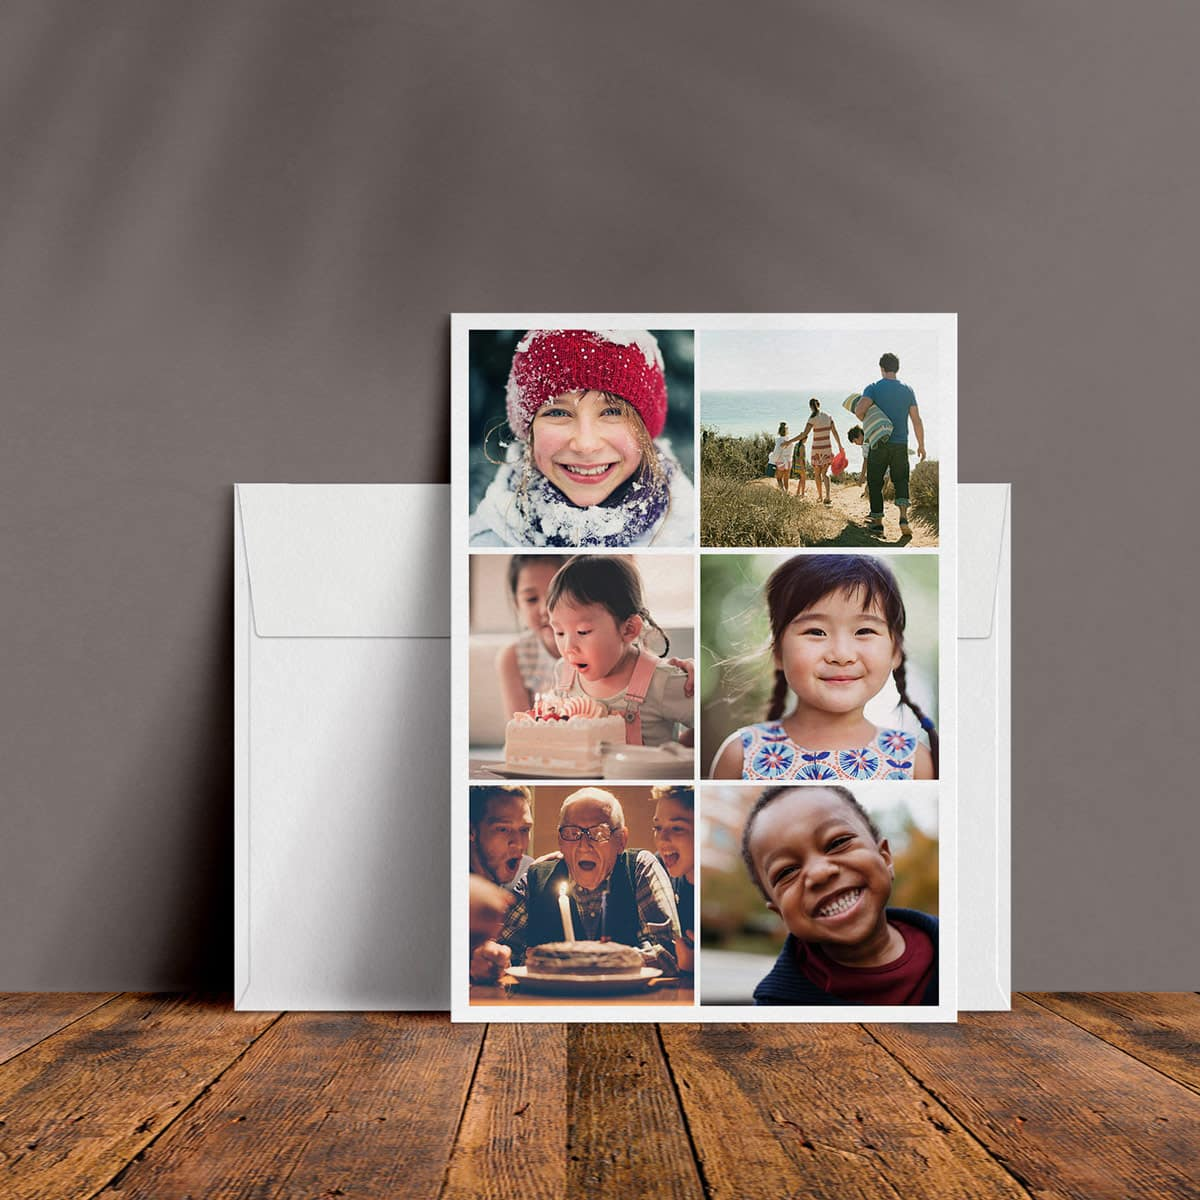 High quality flat photo card print 5x5 5x7